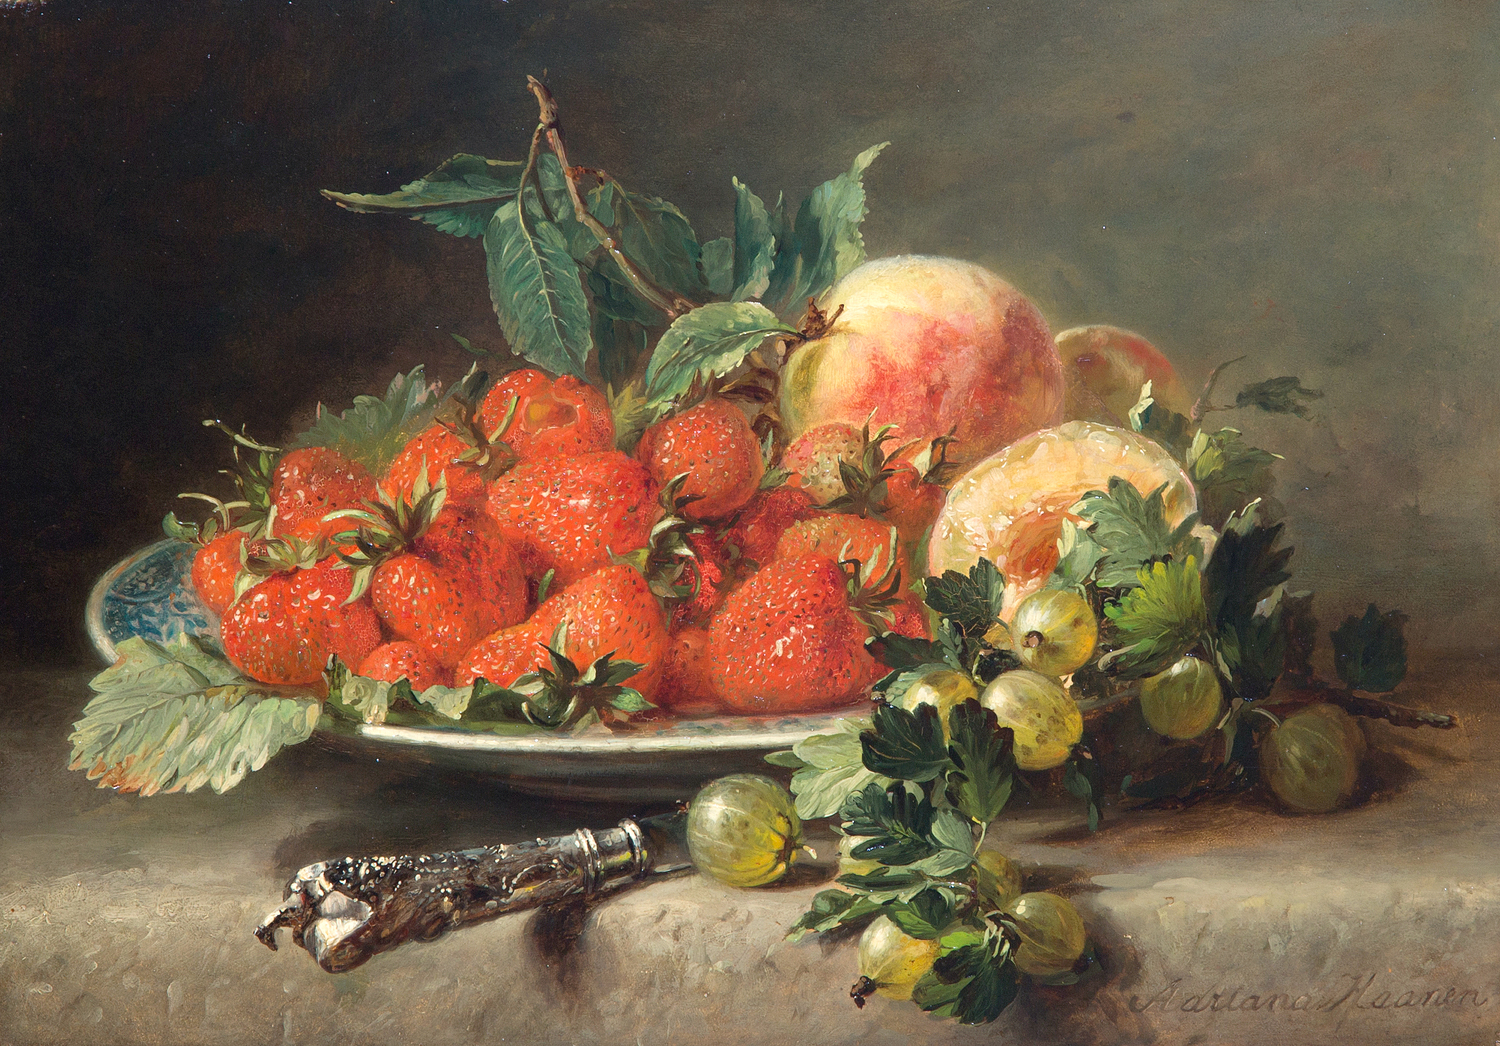 Still Life with Strawberries and Gooseberries by Adriana Johanna Haanen, 19th Century